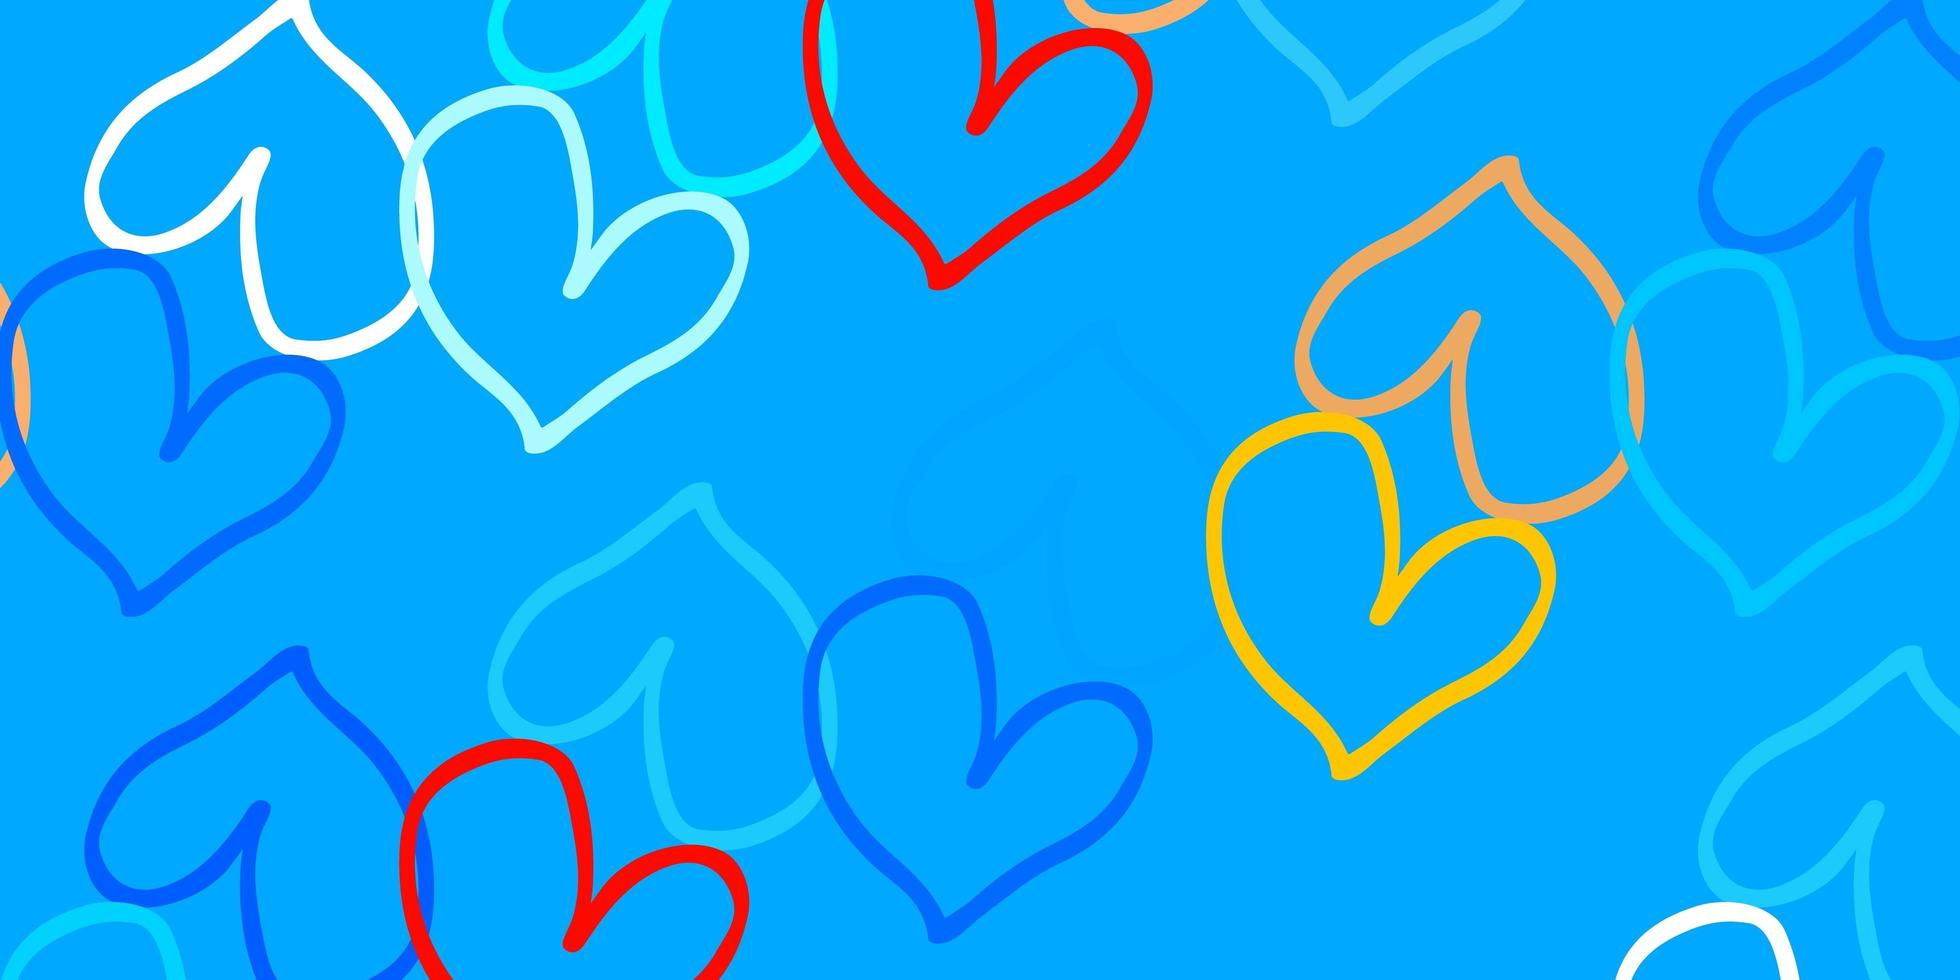 Light Blue, Yellow vector background with Shining hearts.